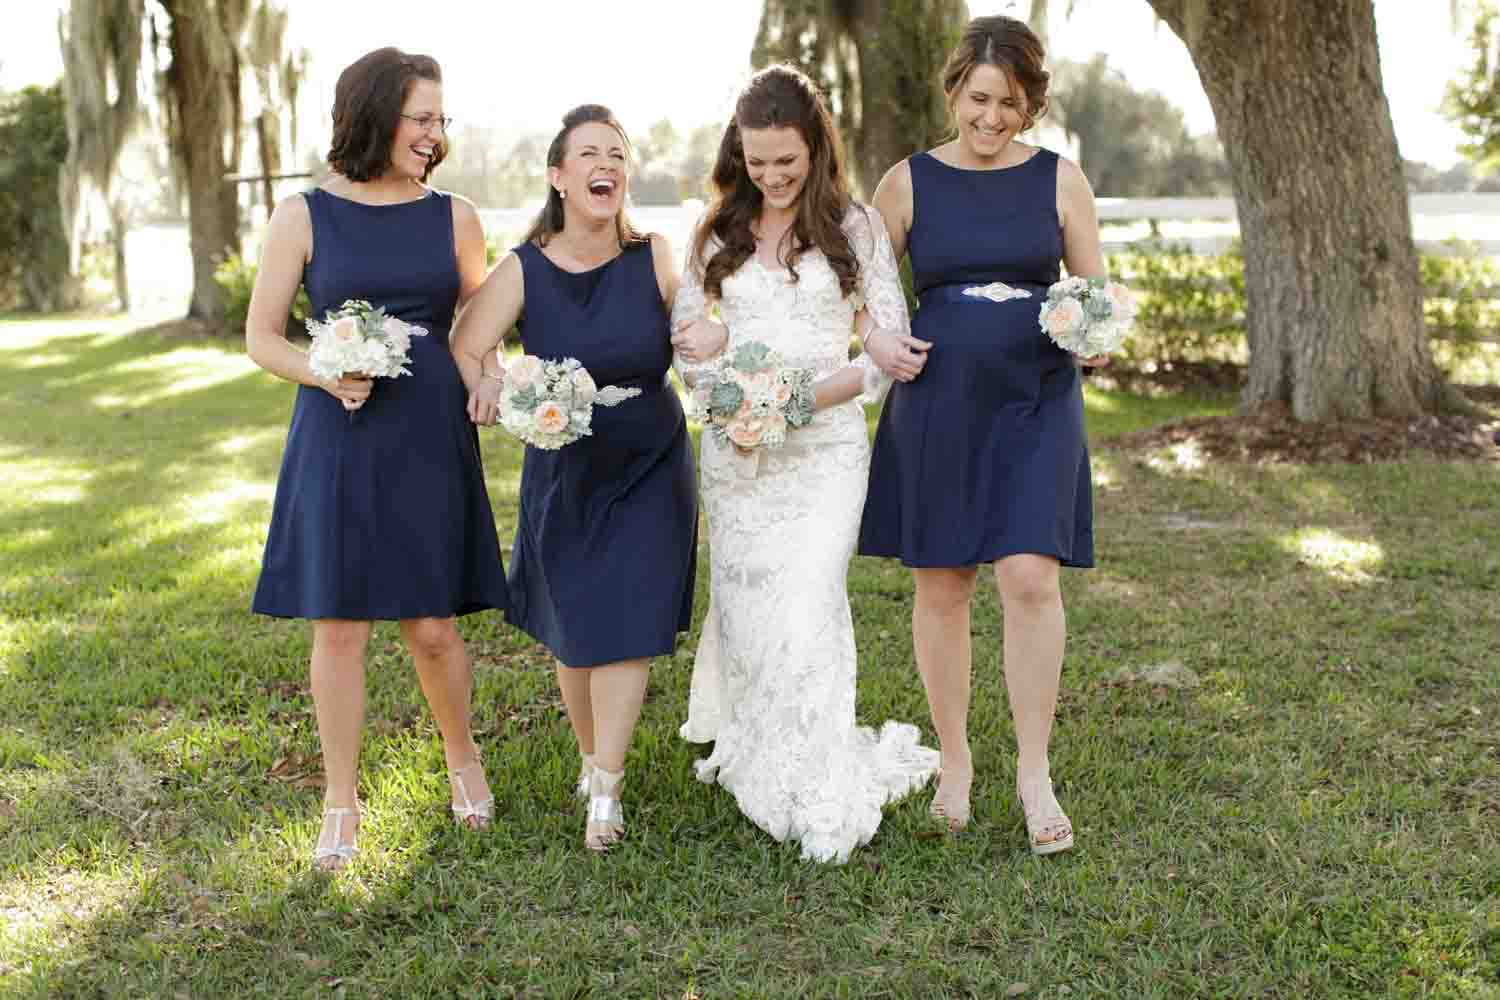 bridesmaids in navy dresses walk and laughing with bride